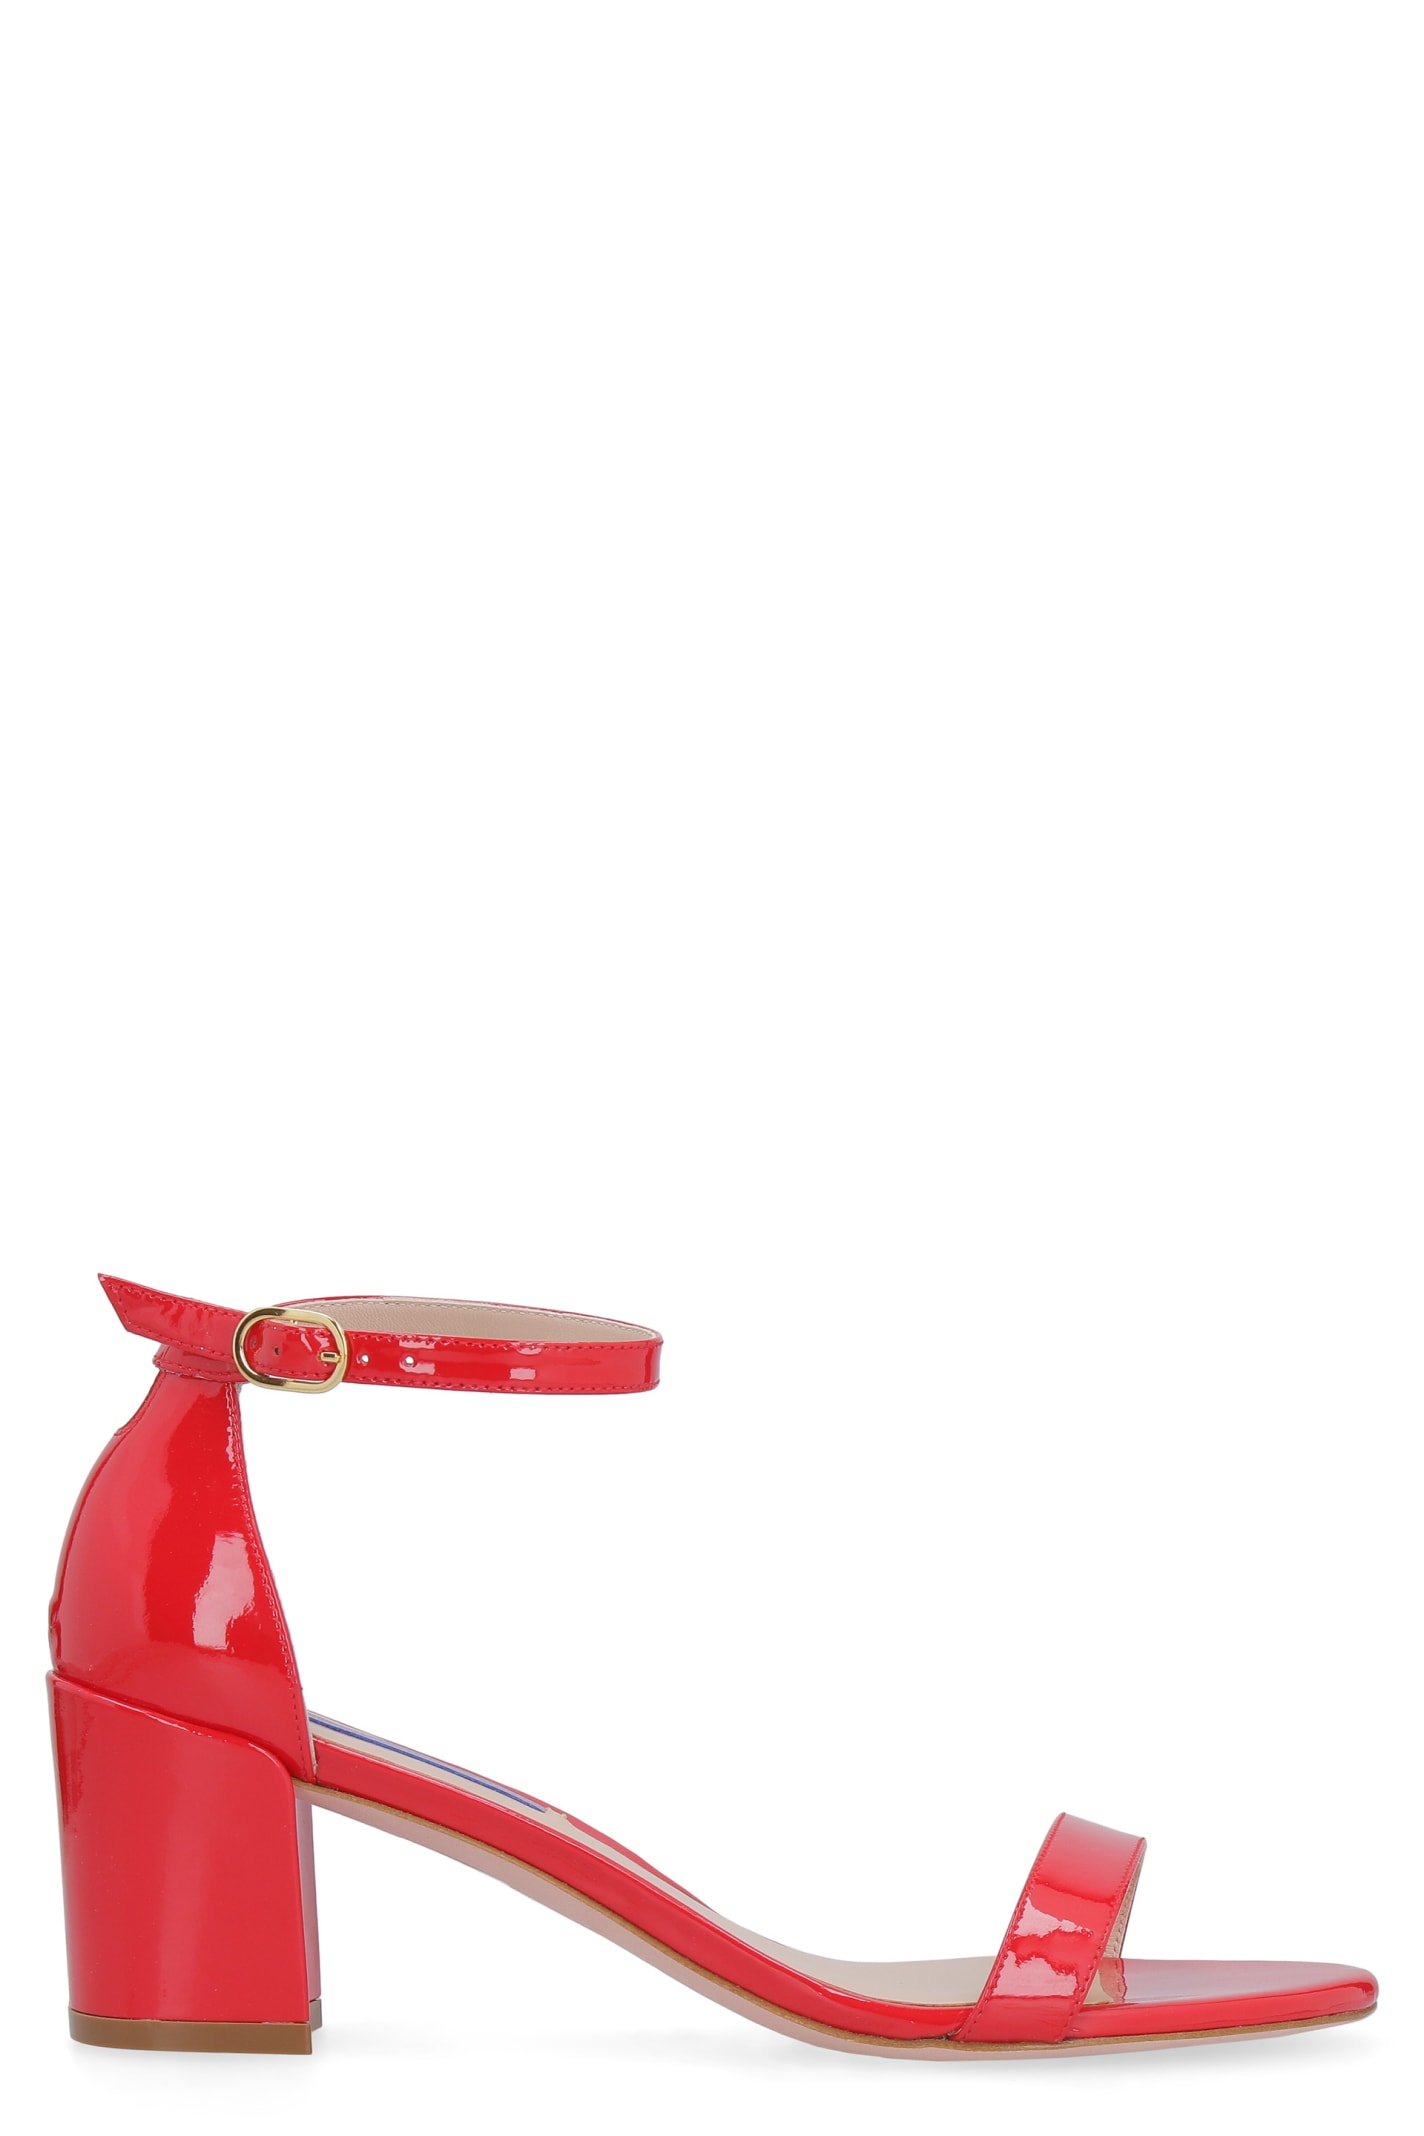 Stuart Weitzman Simple Patent Leather Sandals